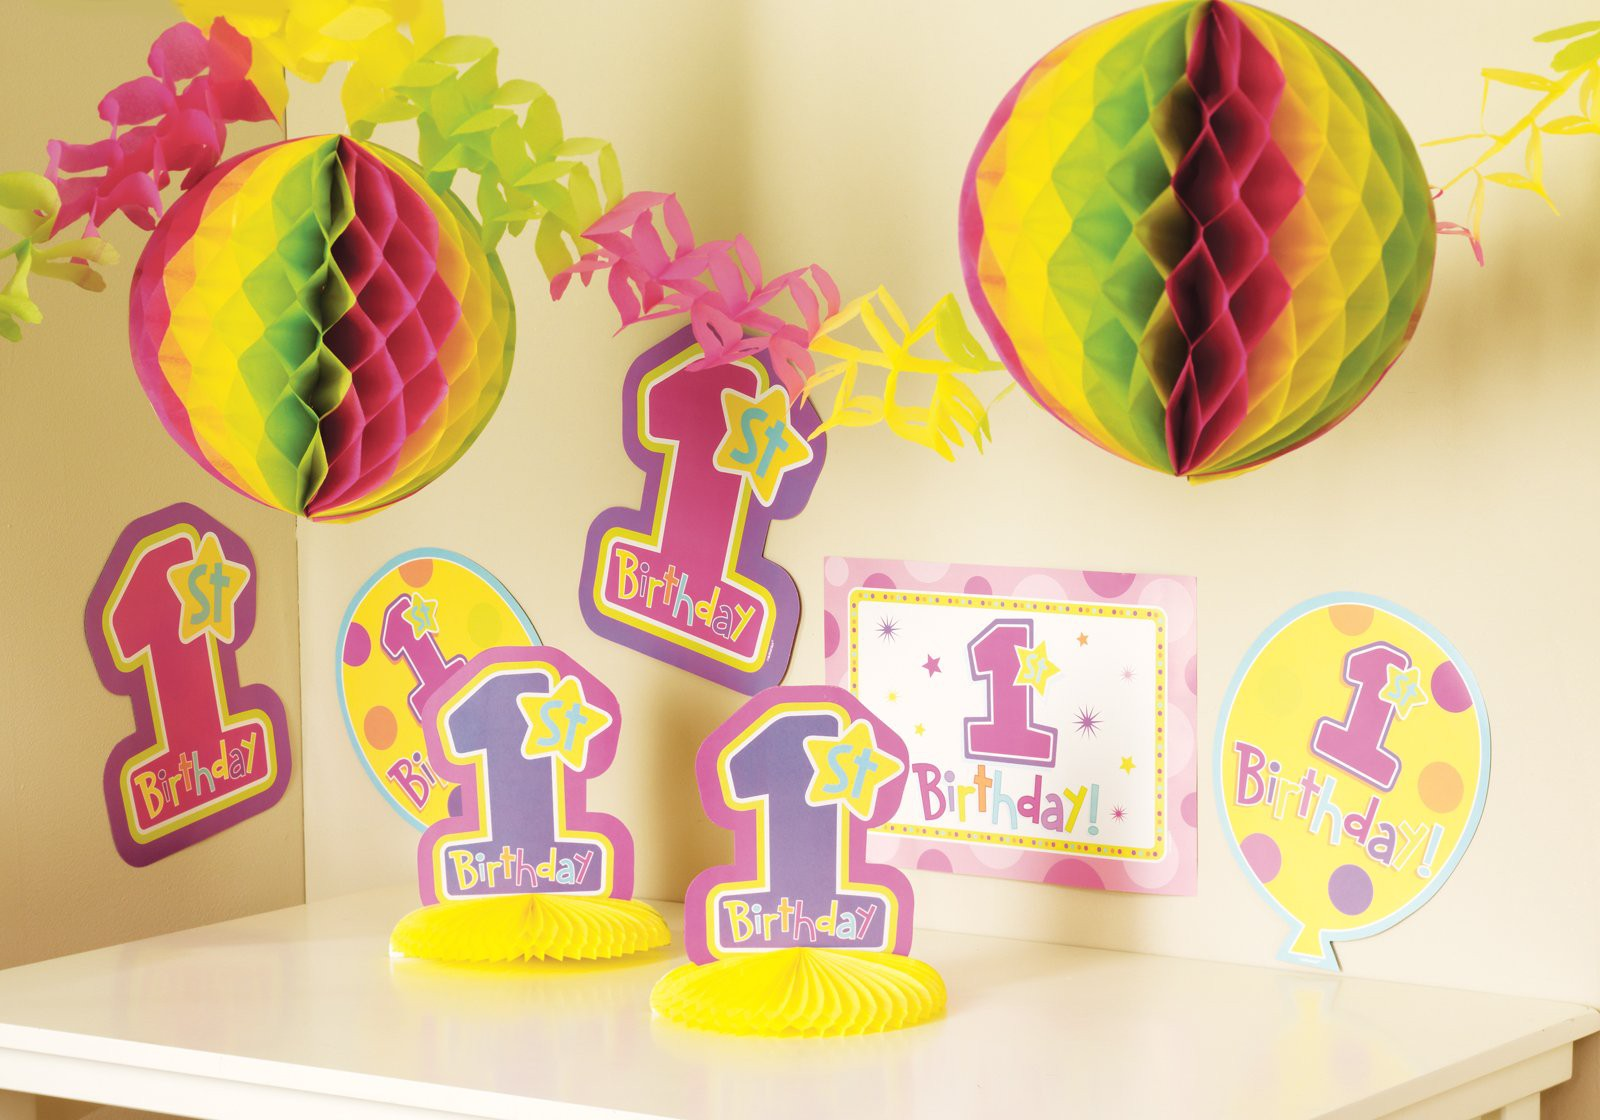 First Birthday Party Supplies – What You Need to Have a Really Great Party